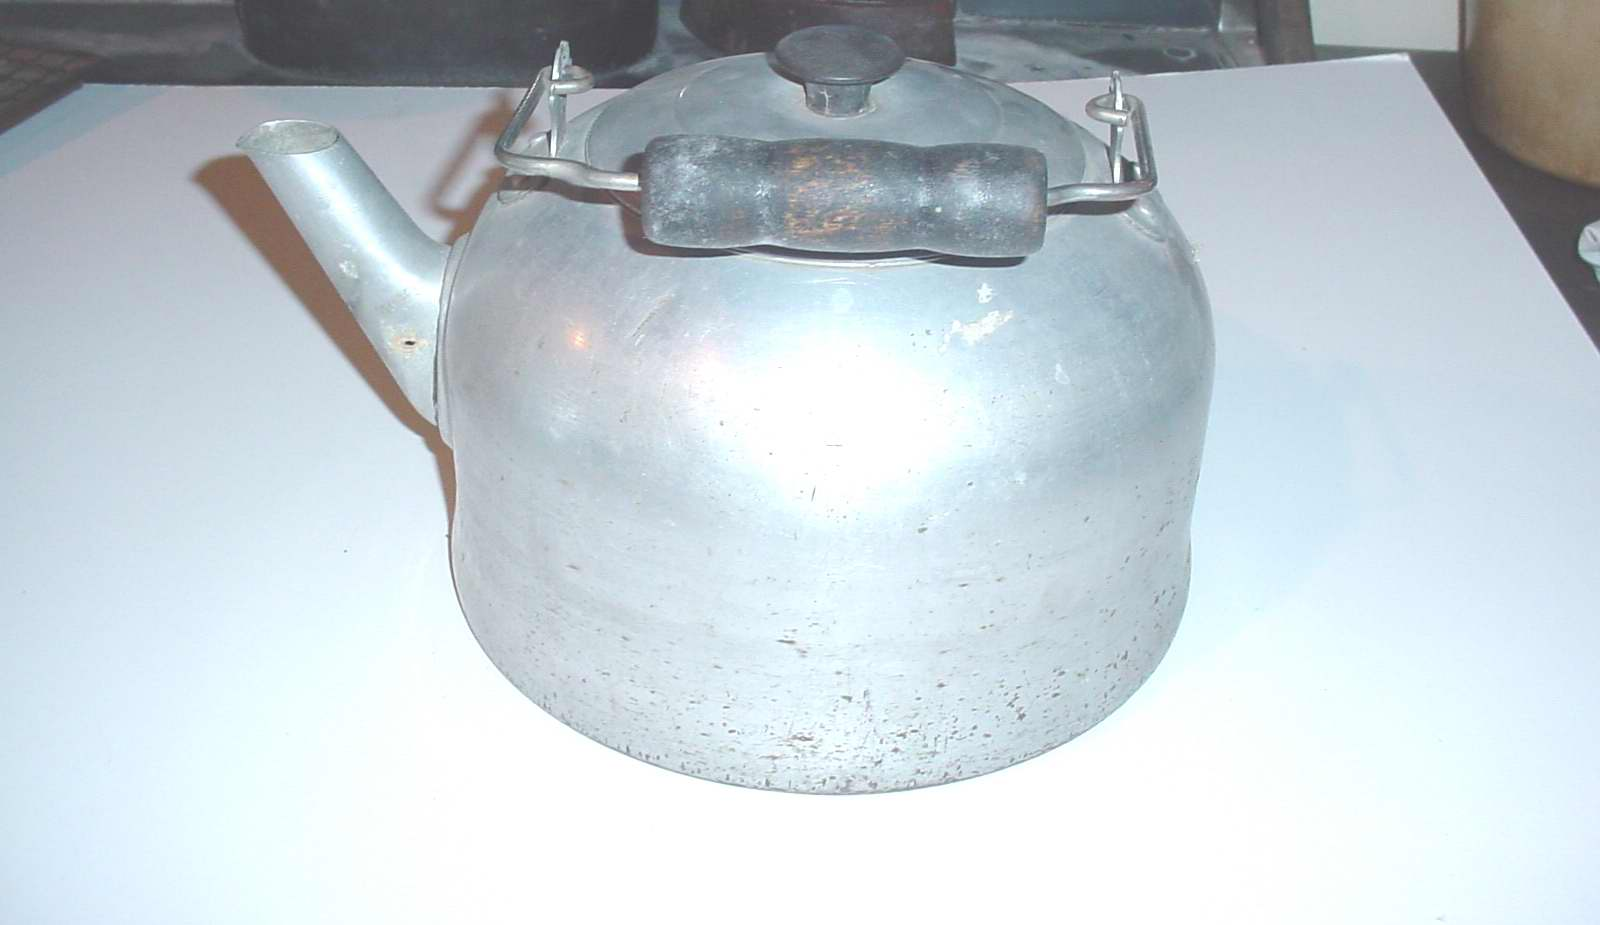 High Plains Museum | HHG006 Teakettle with wooden handle